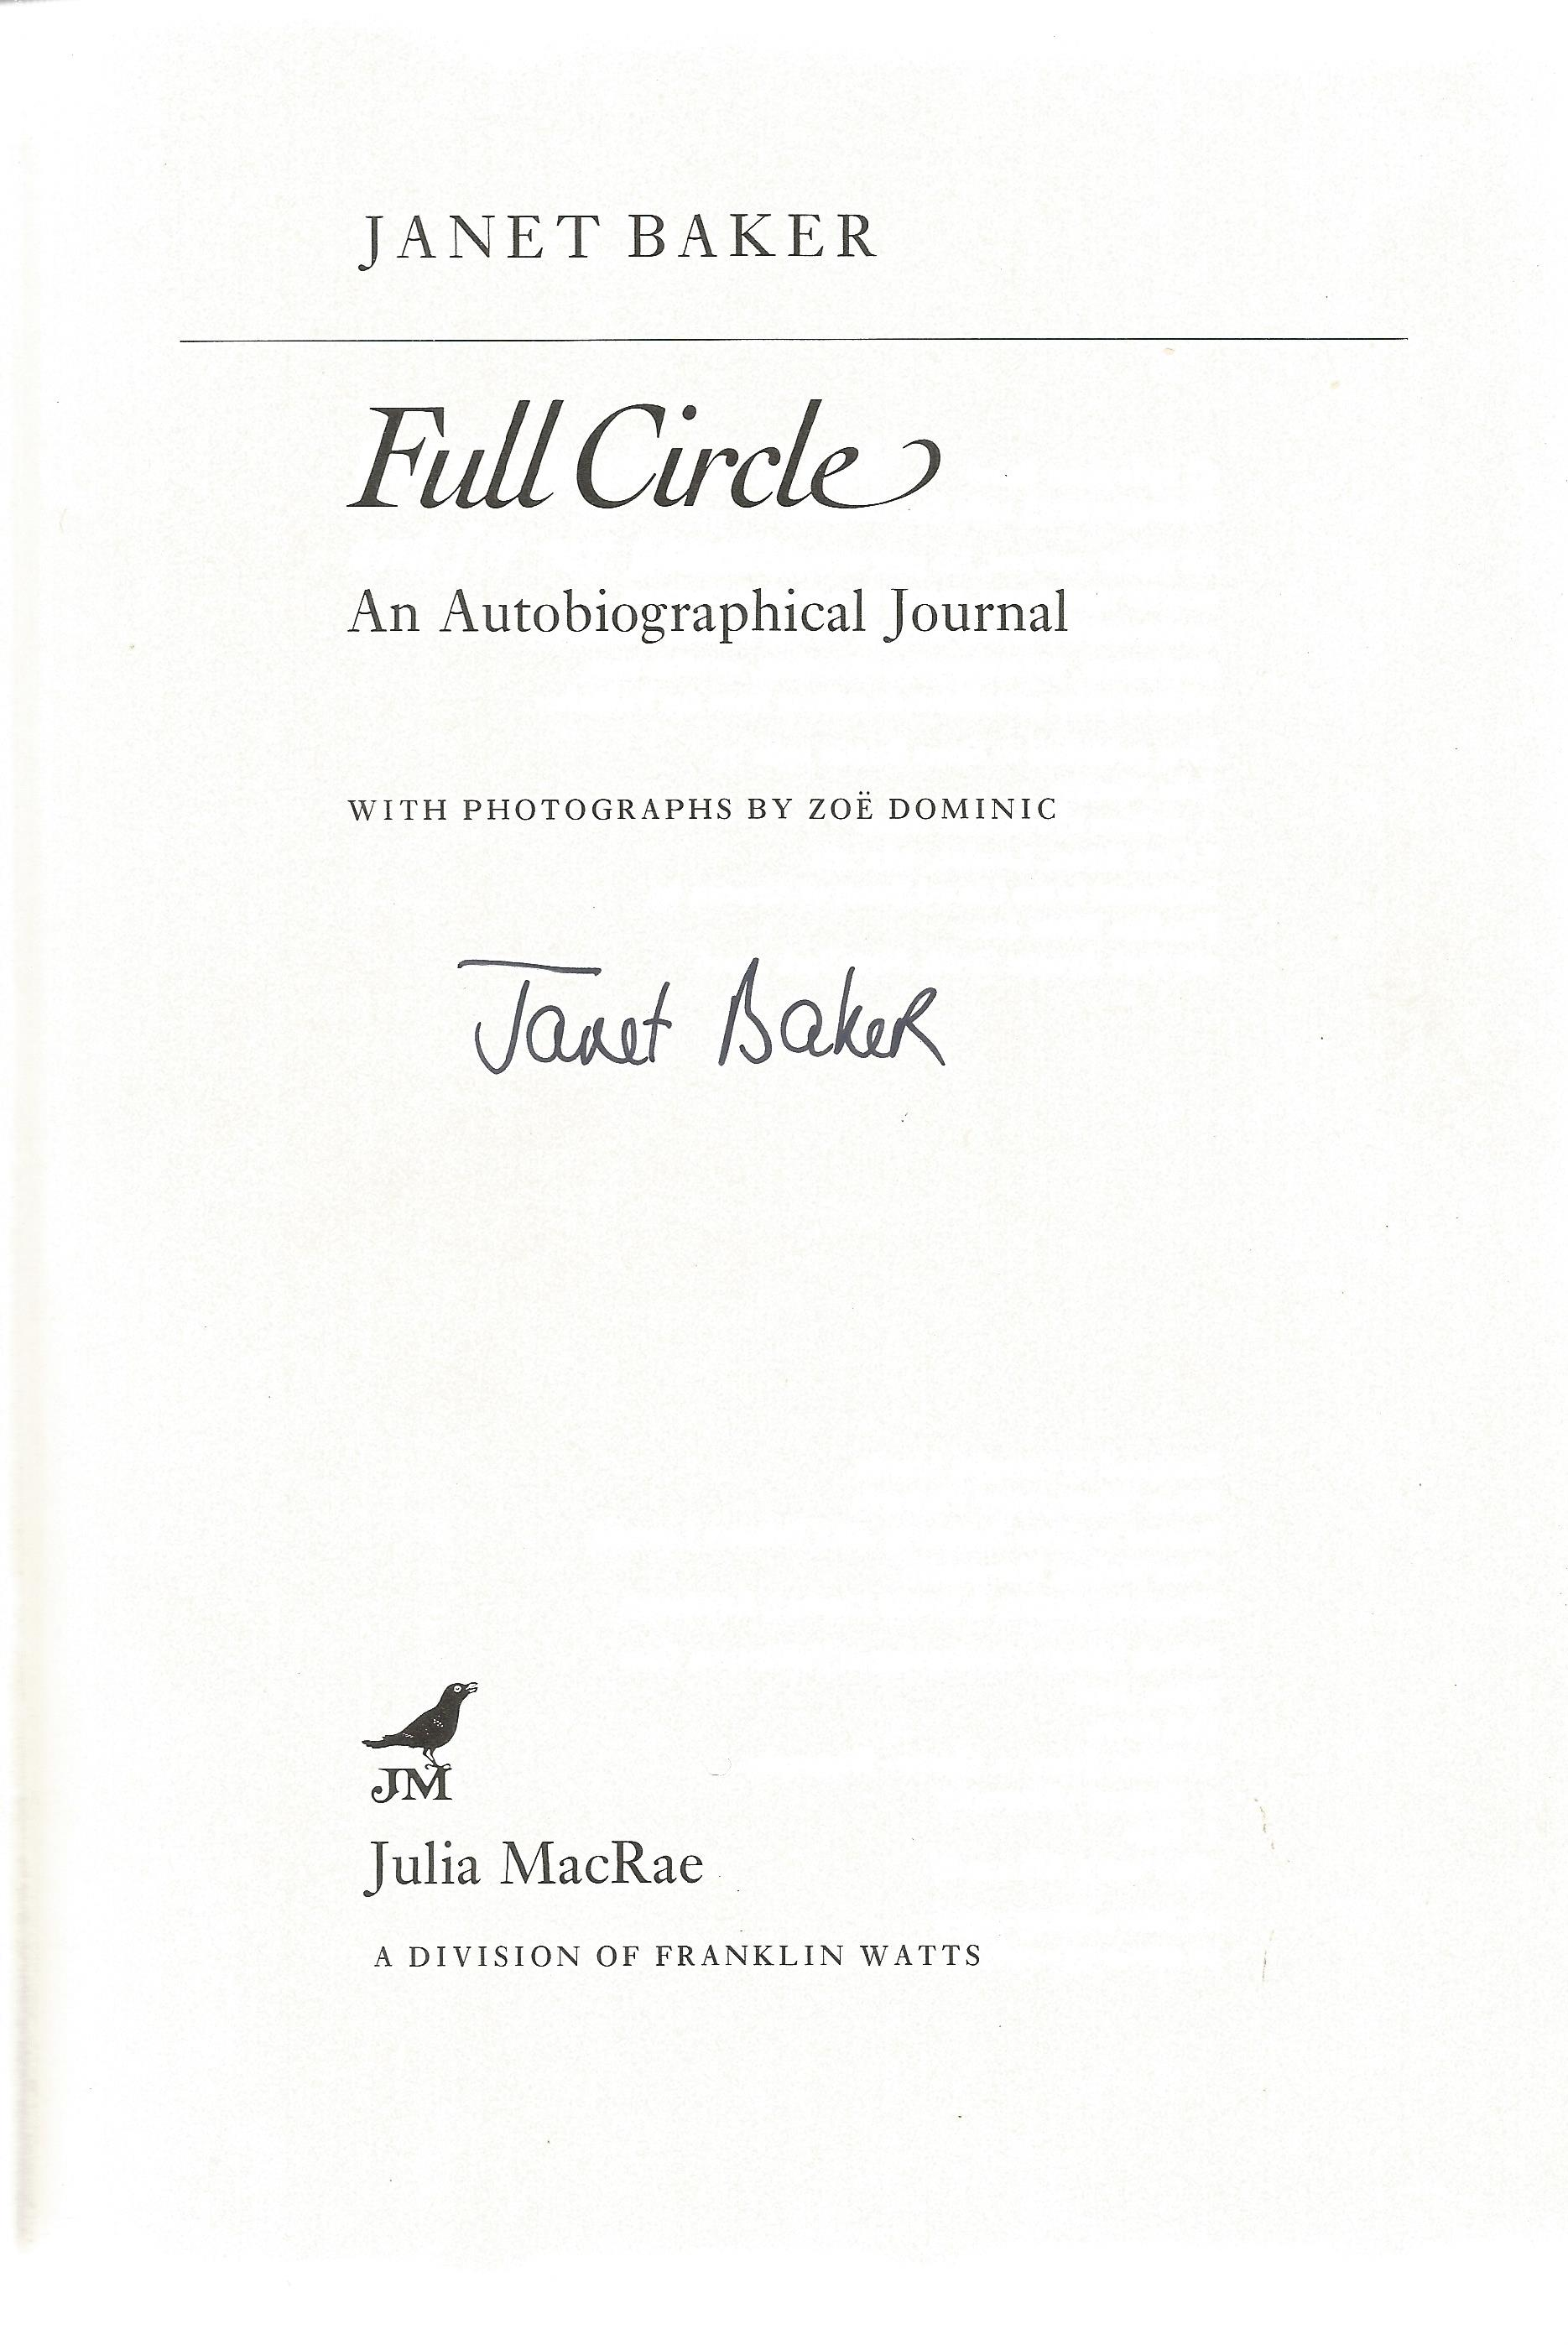 Janet Baker Hardback Book Full Circle signed by the Author on the Title Page First Edition Good - Image 2 of 2